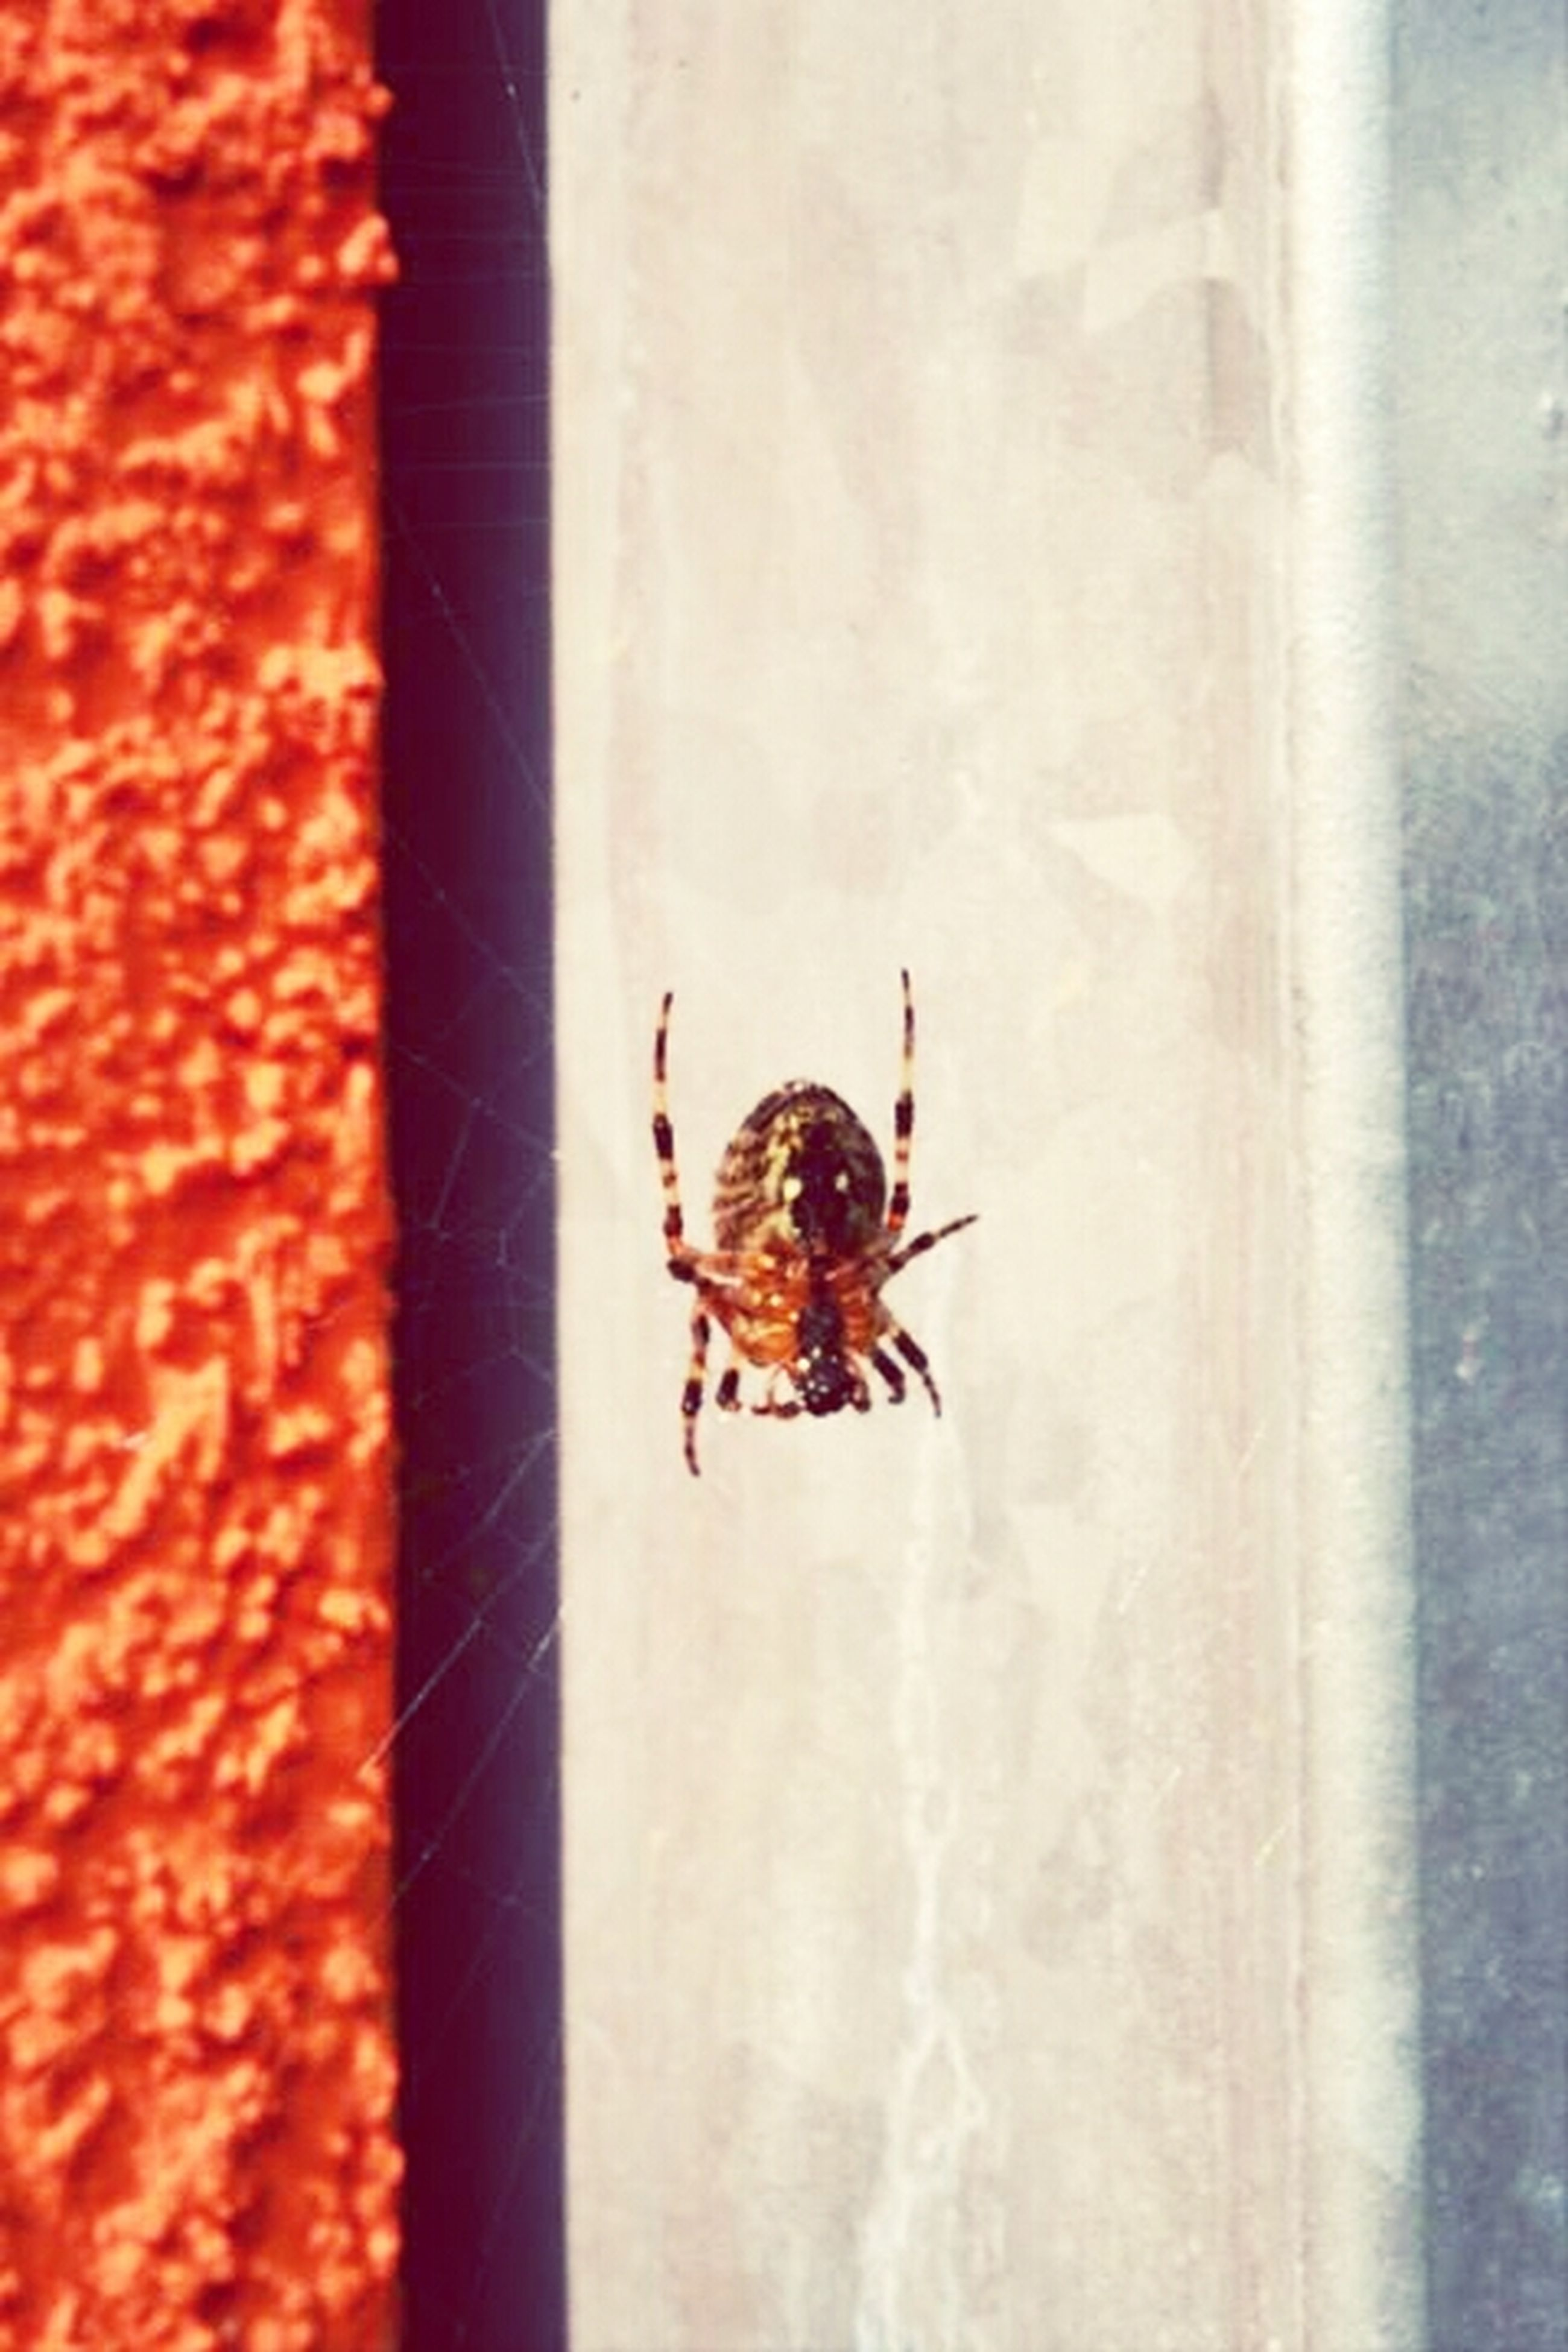 insect, animal themes, animals in the wild, one animal, wildlife, close-up, spider, focus on foreground, wall - building feature, nature, arthropod, selective focus, outdoors, zoology, day, no people, animal antenna, natural pattern, full length, textured